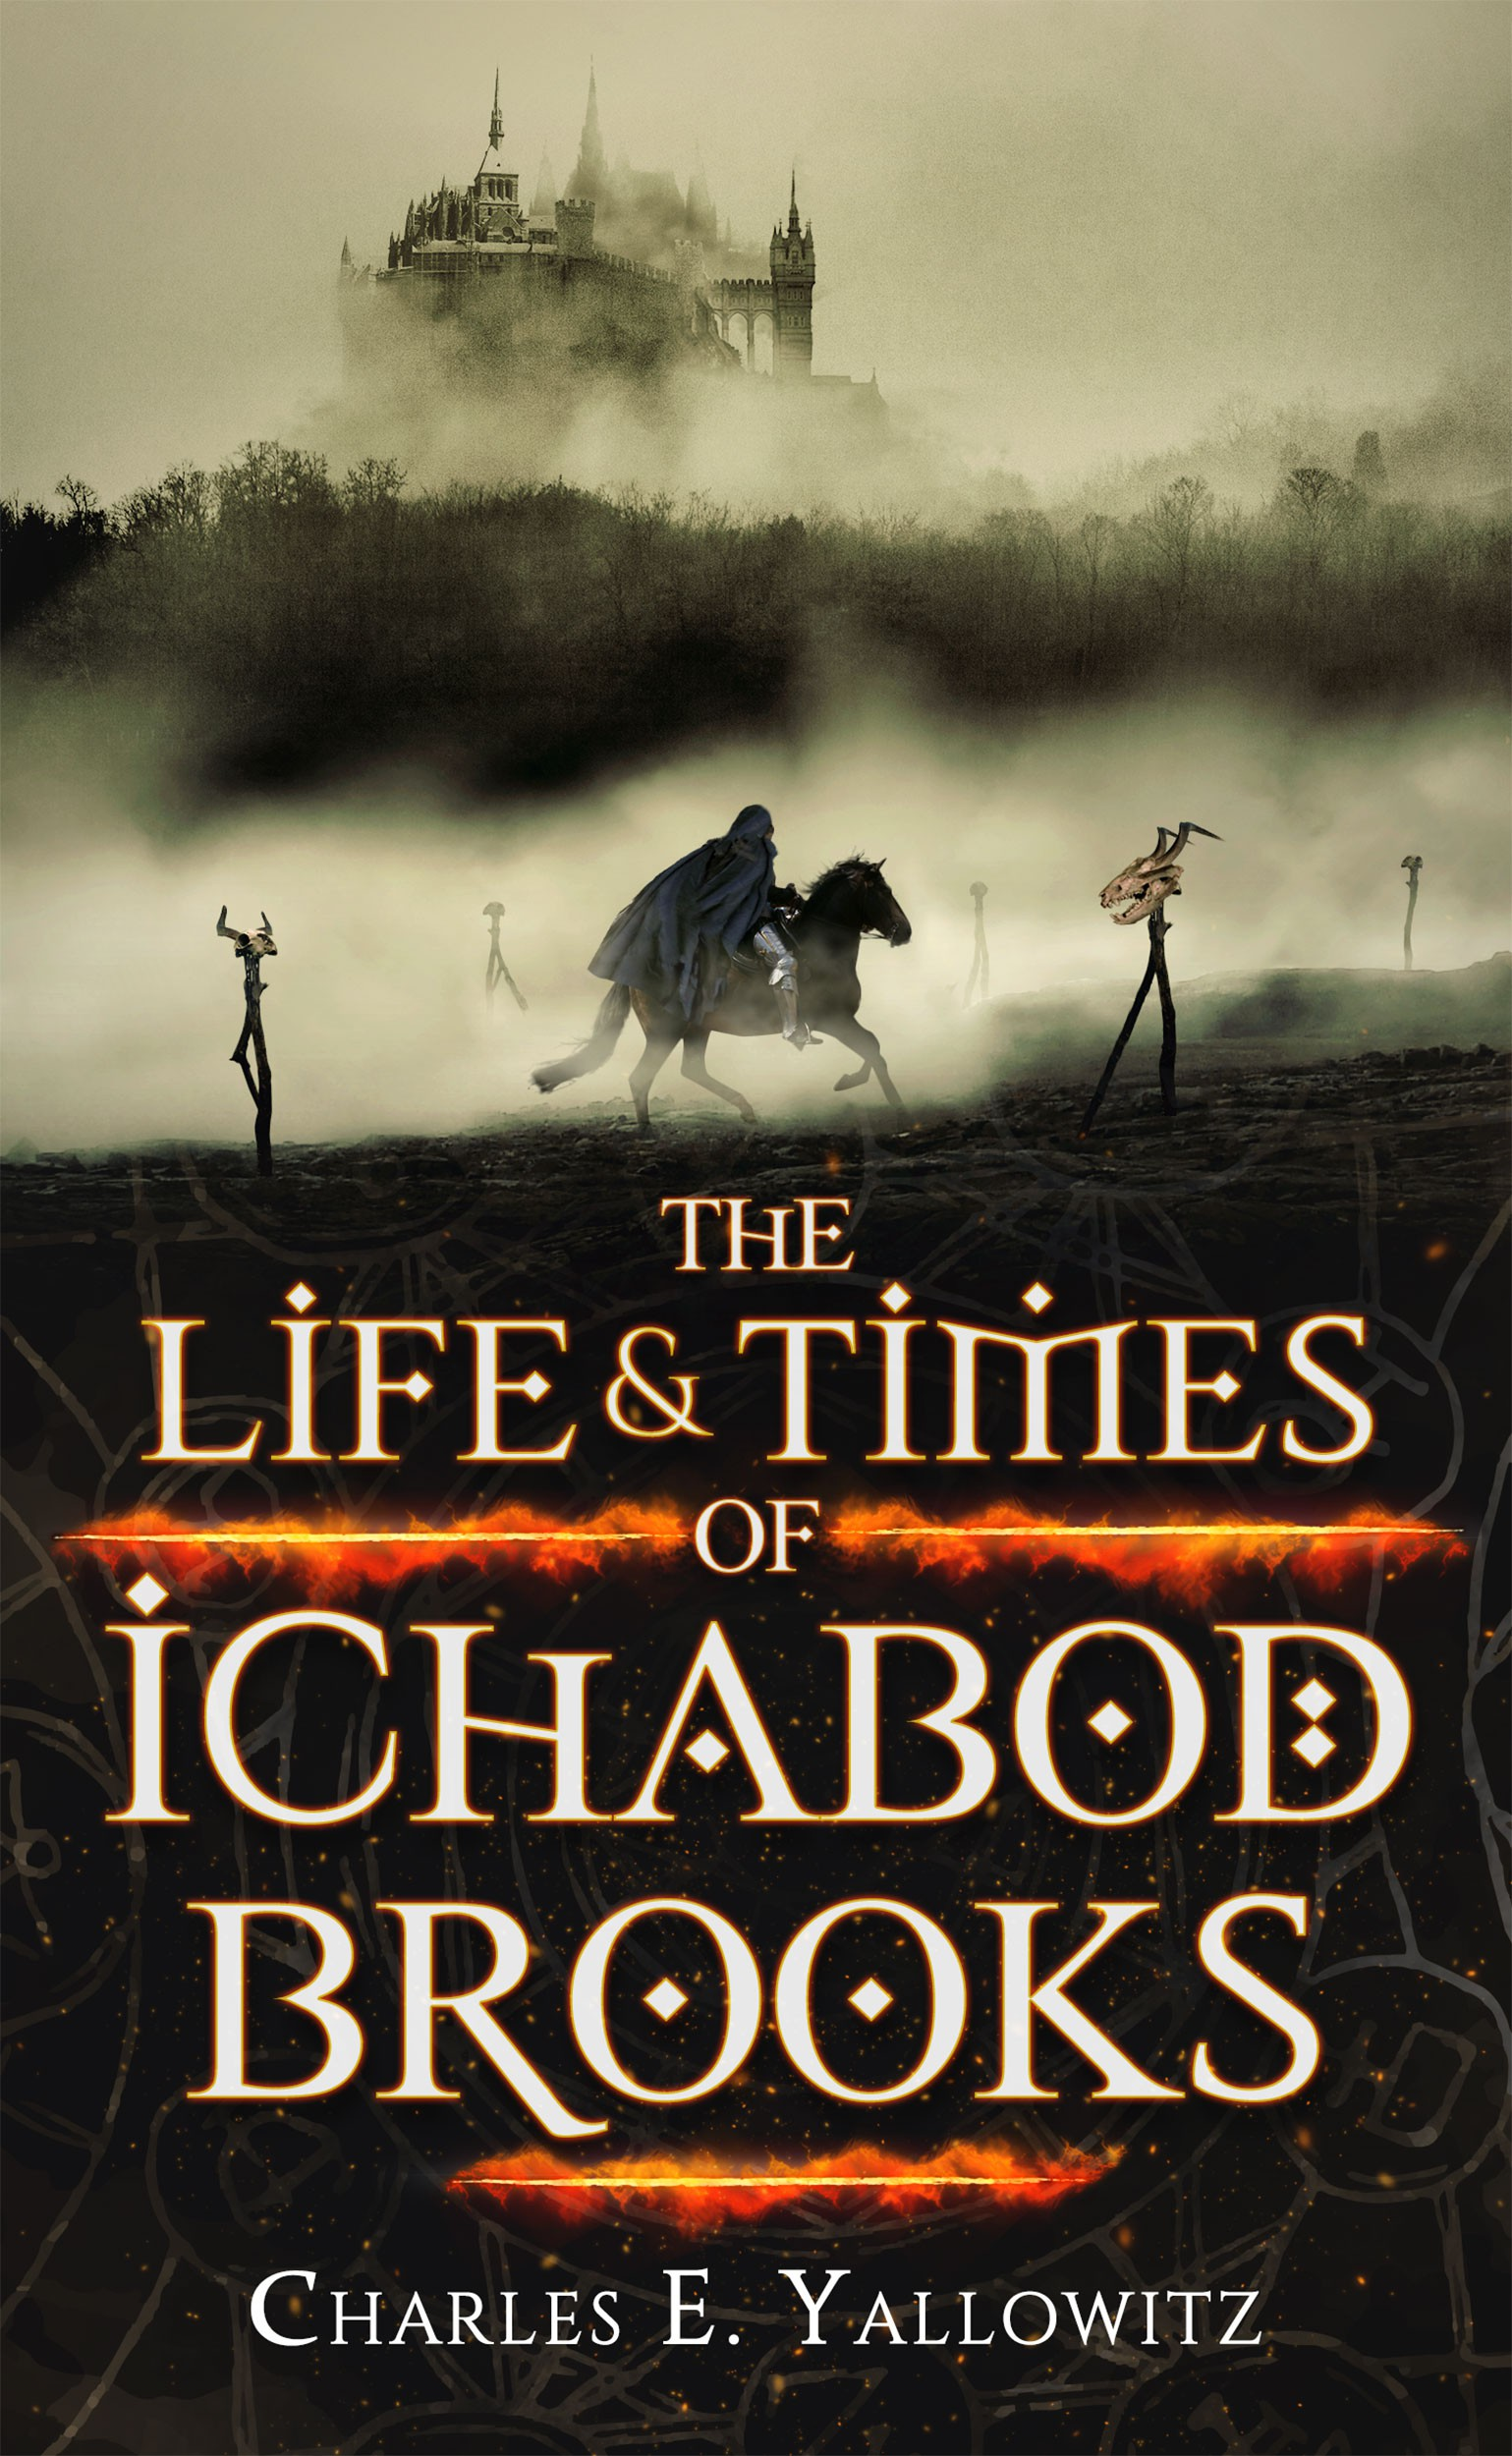 Create the eBook Cover for 'The Life & Times of Ichabod Brooks'!